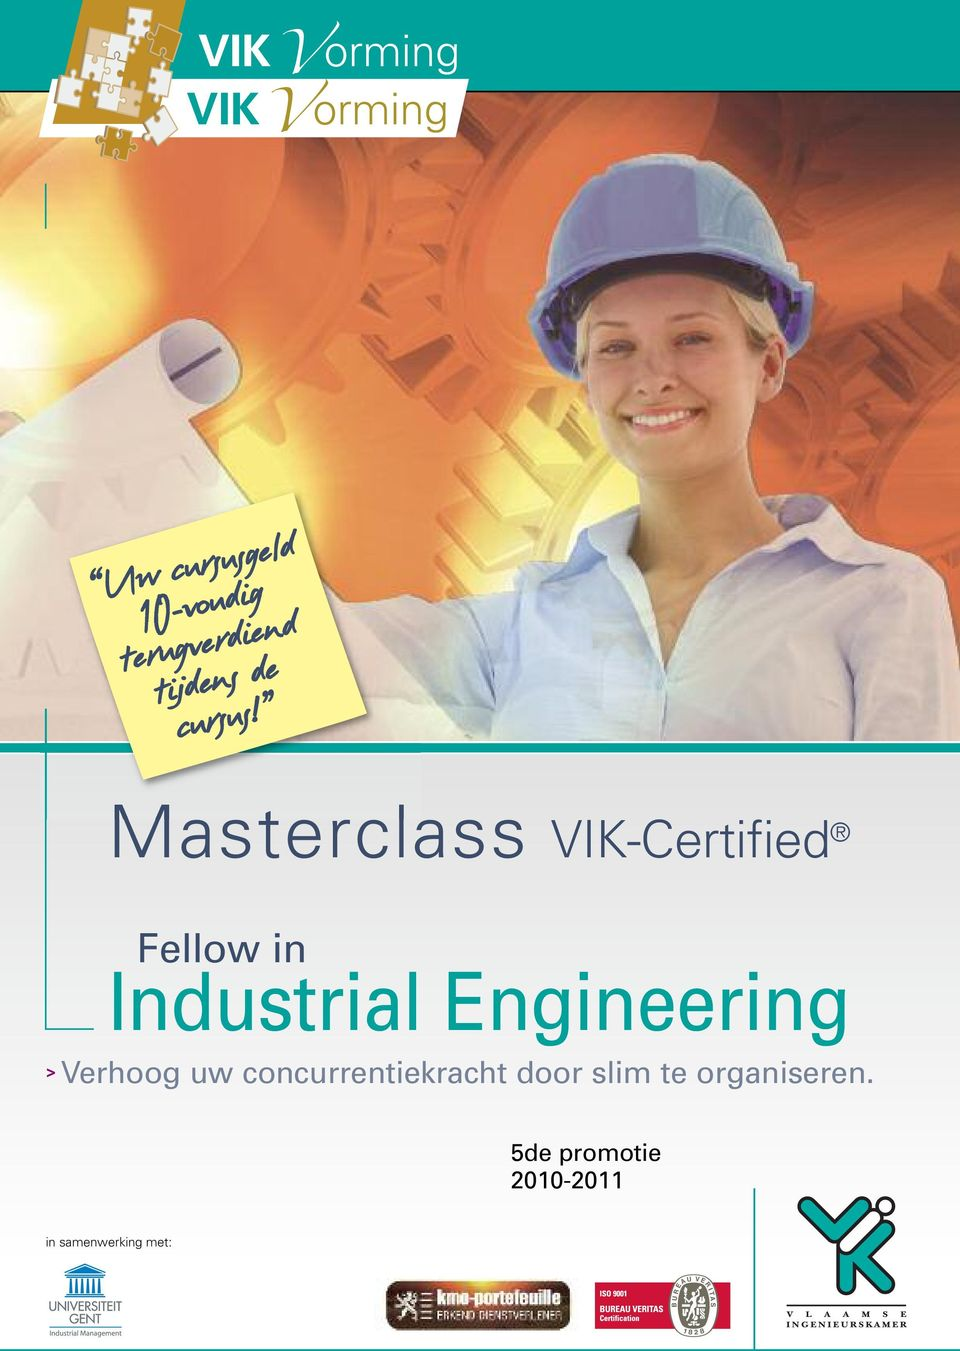 Masterclass VIK-Certified Fellow in Industrial Engineering >